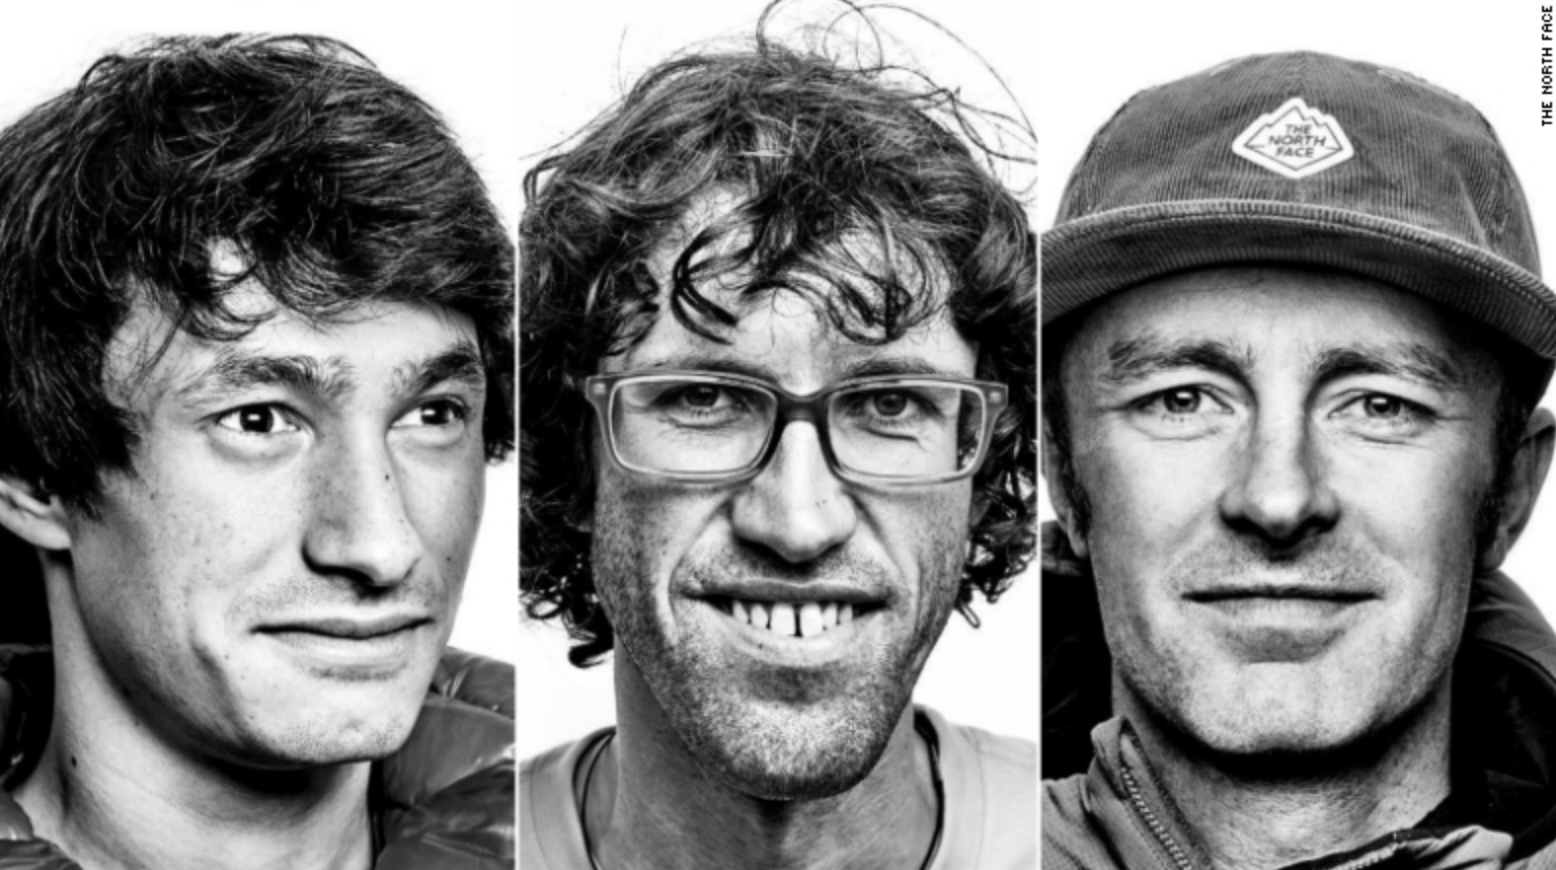 David Lama, Hansjörg Auer and Jess Roskelley.  © The North Face